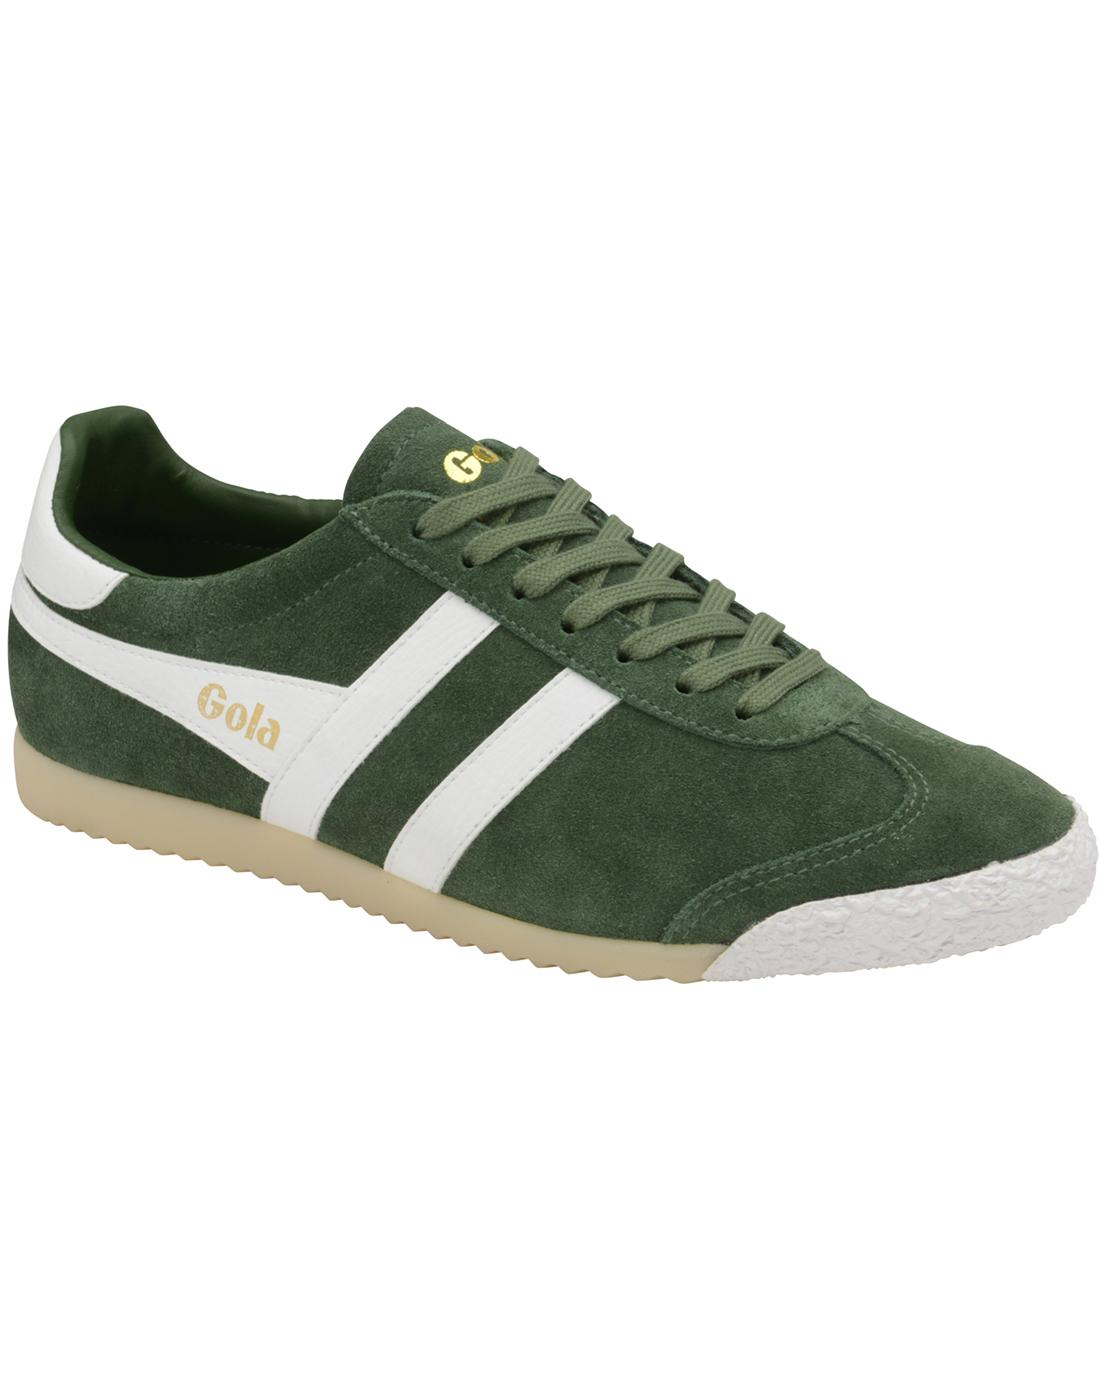 Harrier 50 GOLA Men's Mod 1968 Retro Trainers G/W